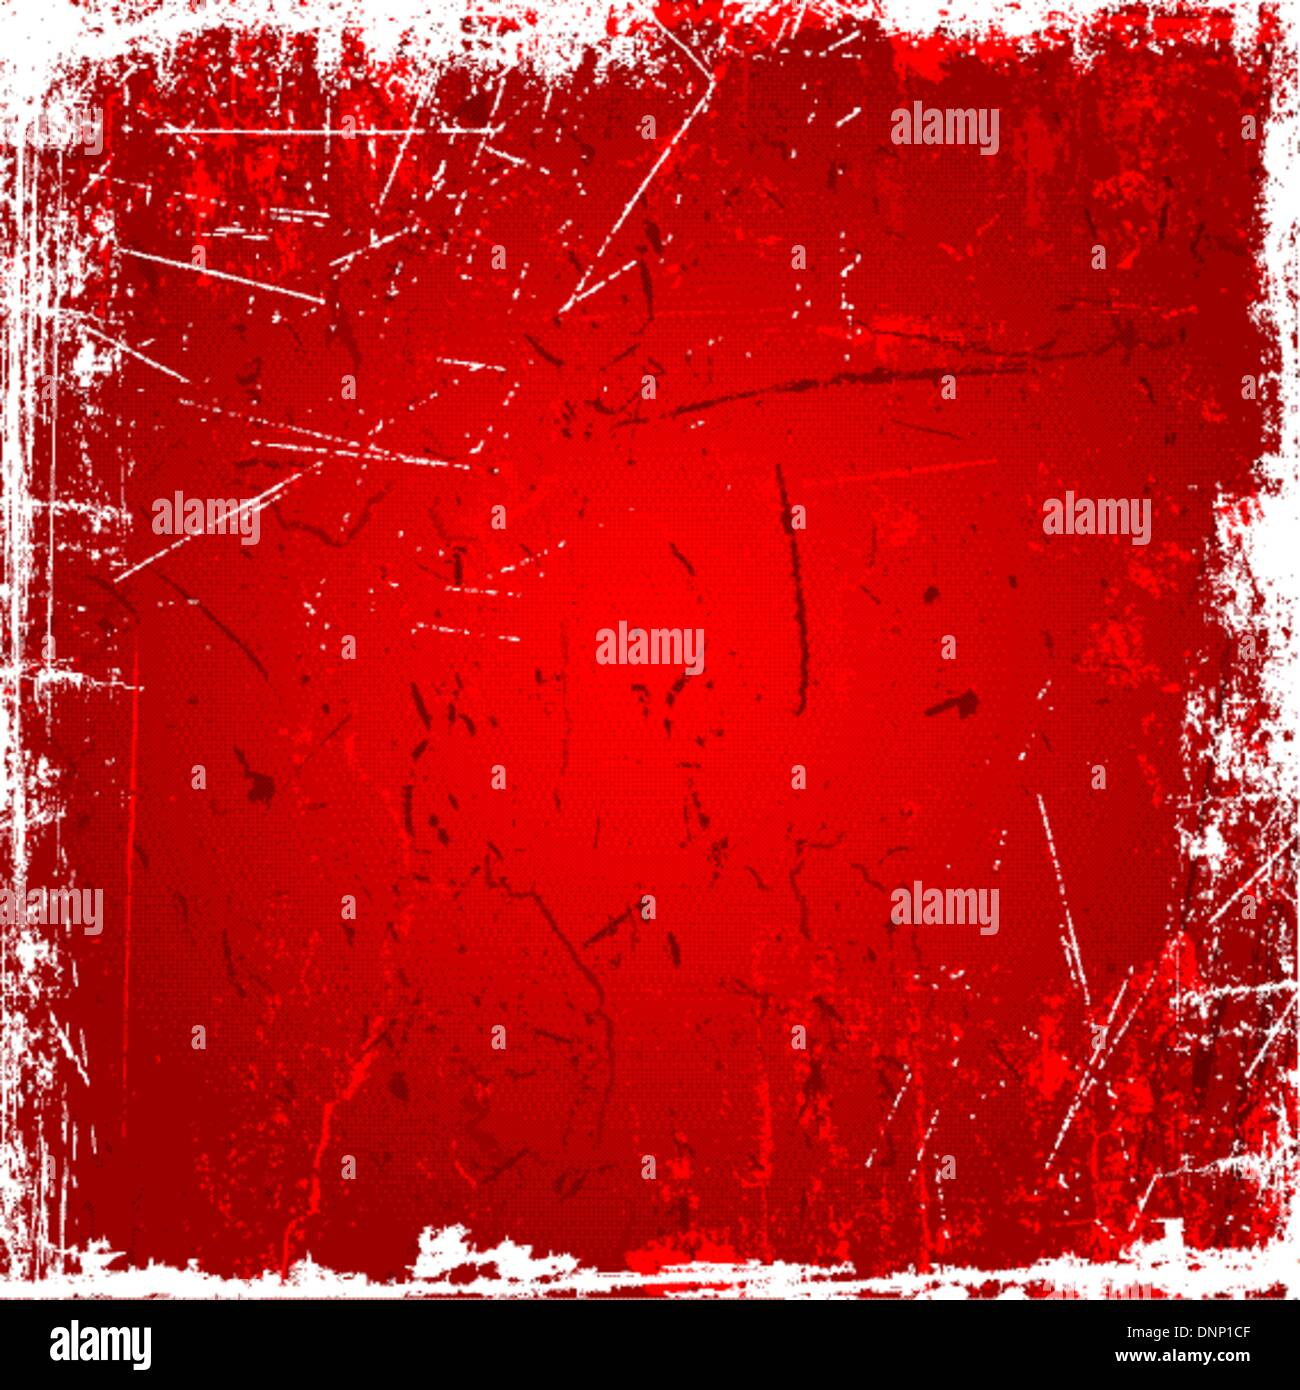 Grunge background with scratches and stains in shades of red - Stock Image